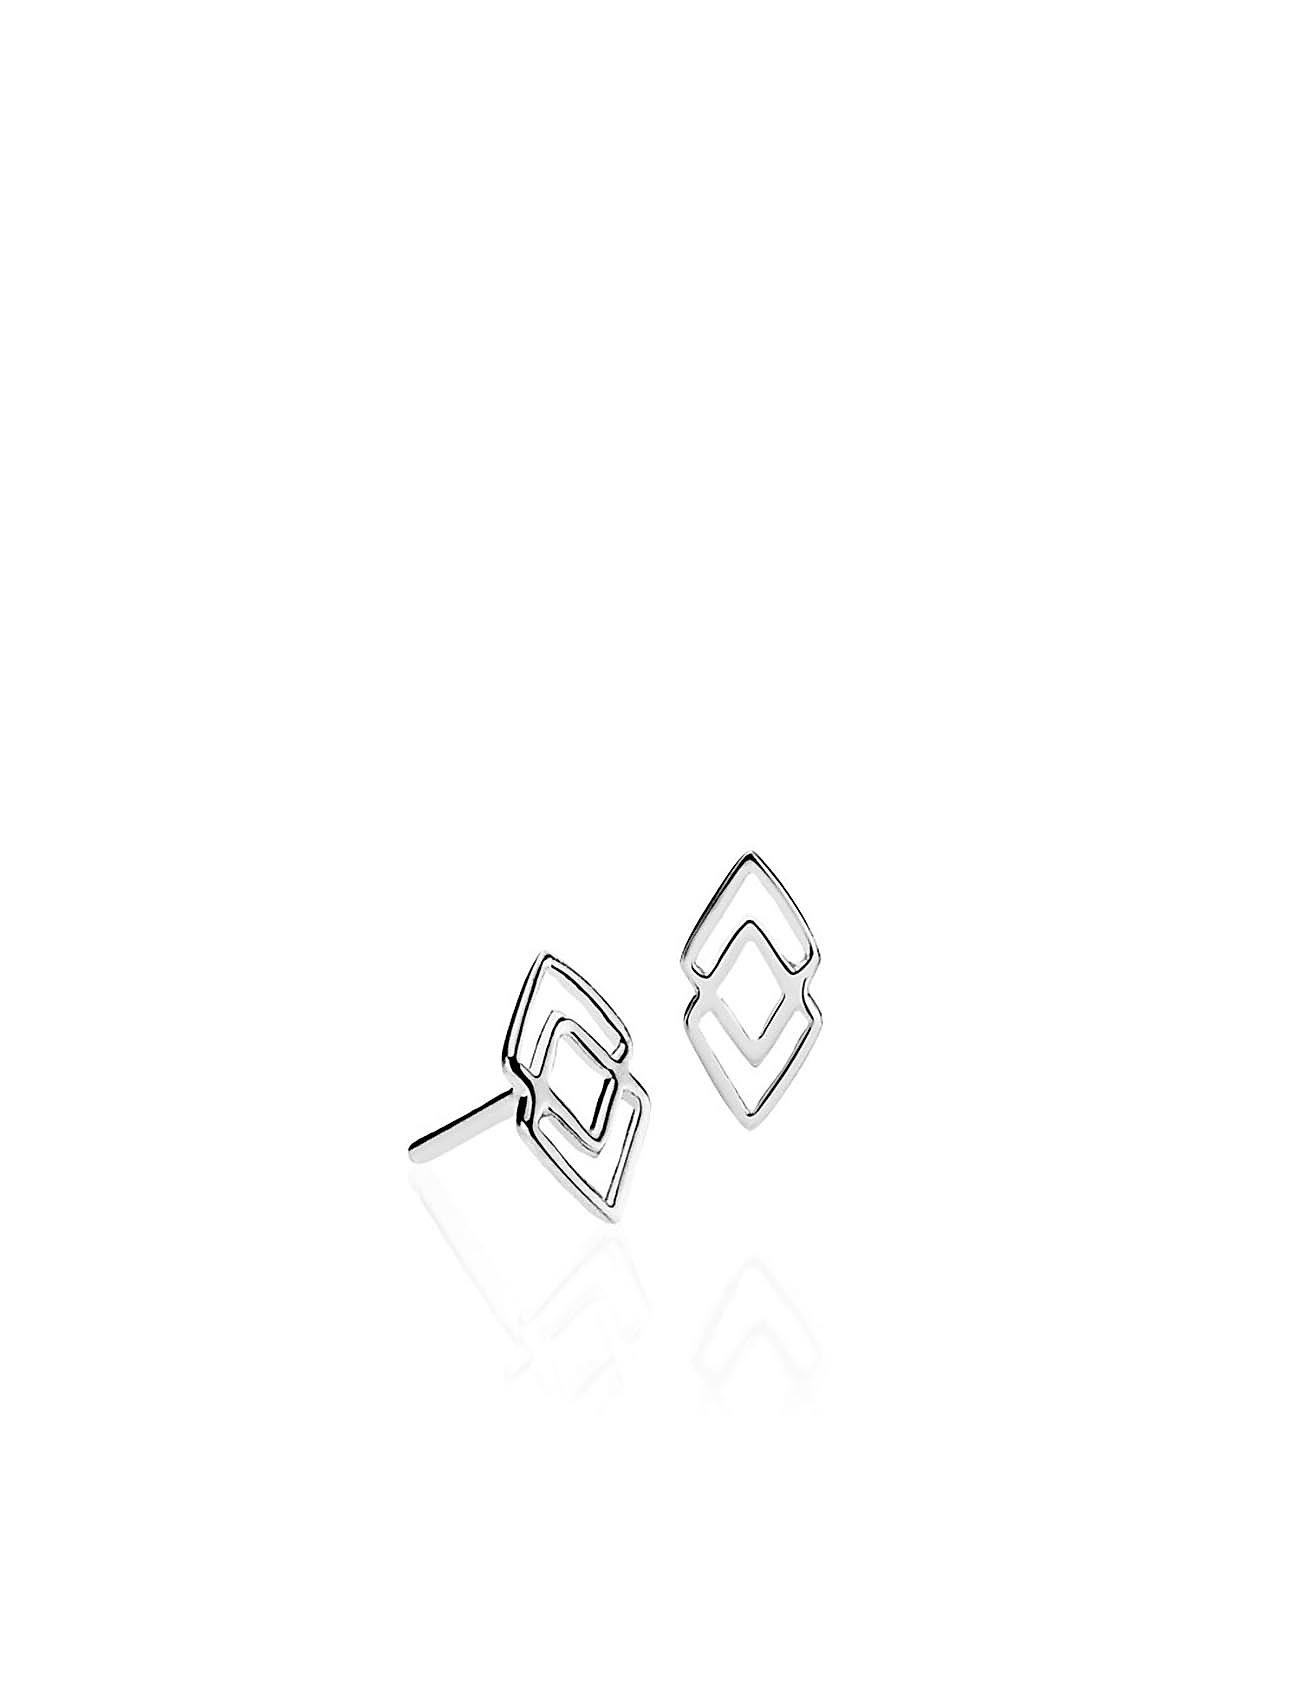 Image of Dna Small Earrings (2826479955)